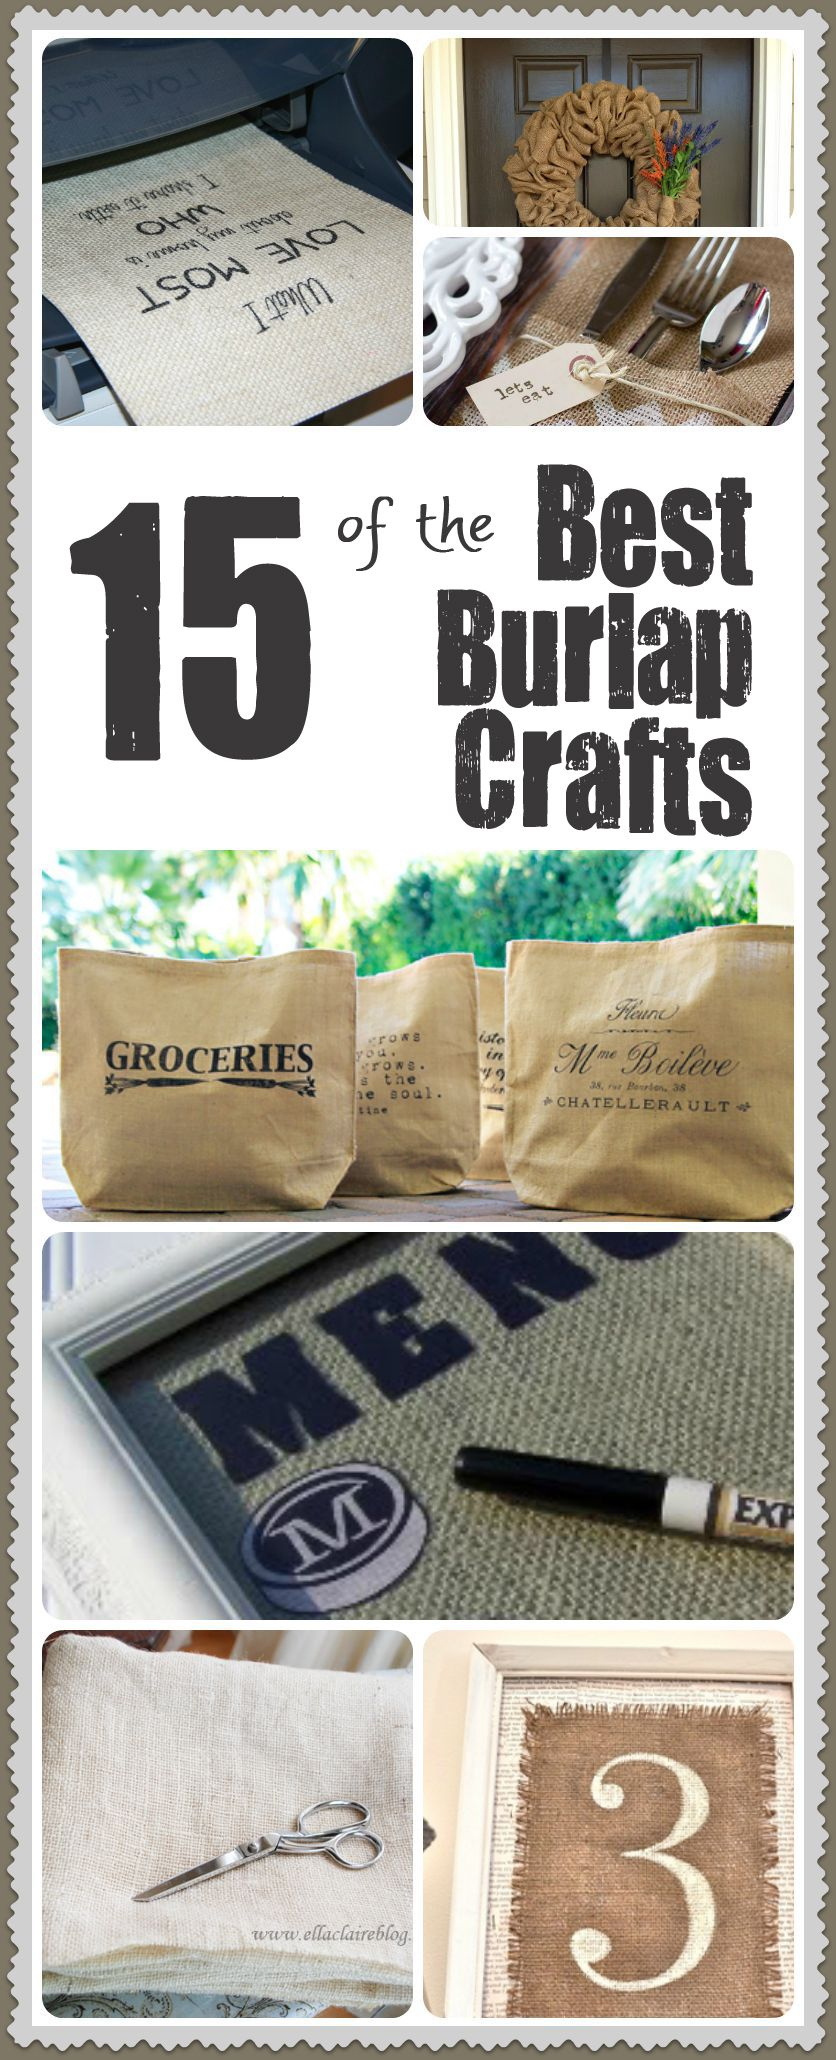 15 DIY Burlap Crafts Ideas | Painted Furniture Ideas.com ...